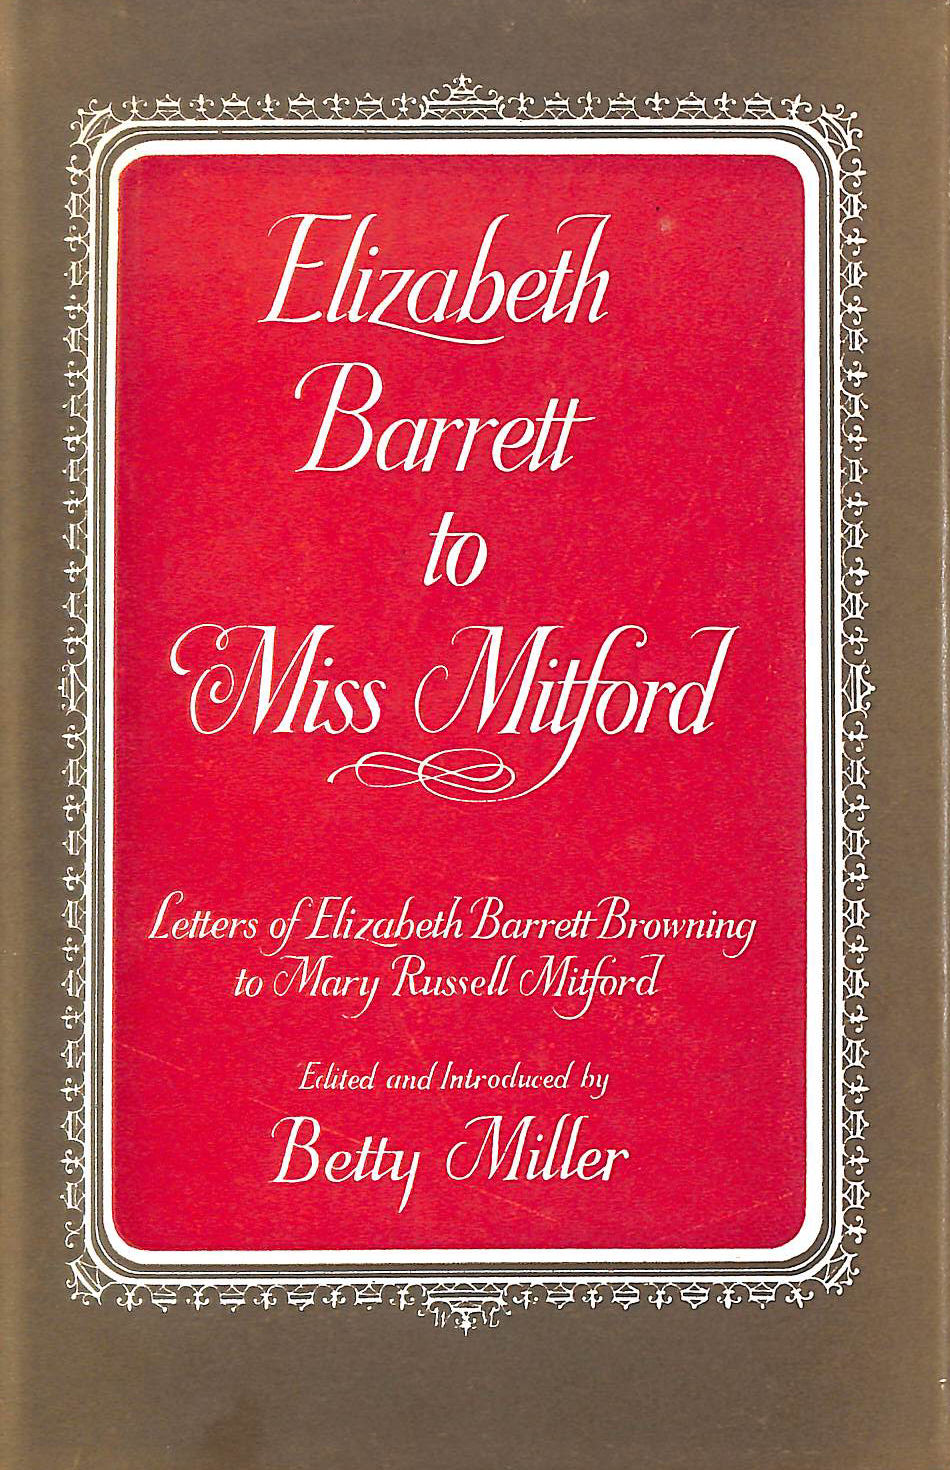 Image for Elizabeth Barrett to Miss Mitford. The Unpublished Letters of Elizabeth Barrett Barrett to Mary Russell Mitford.